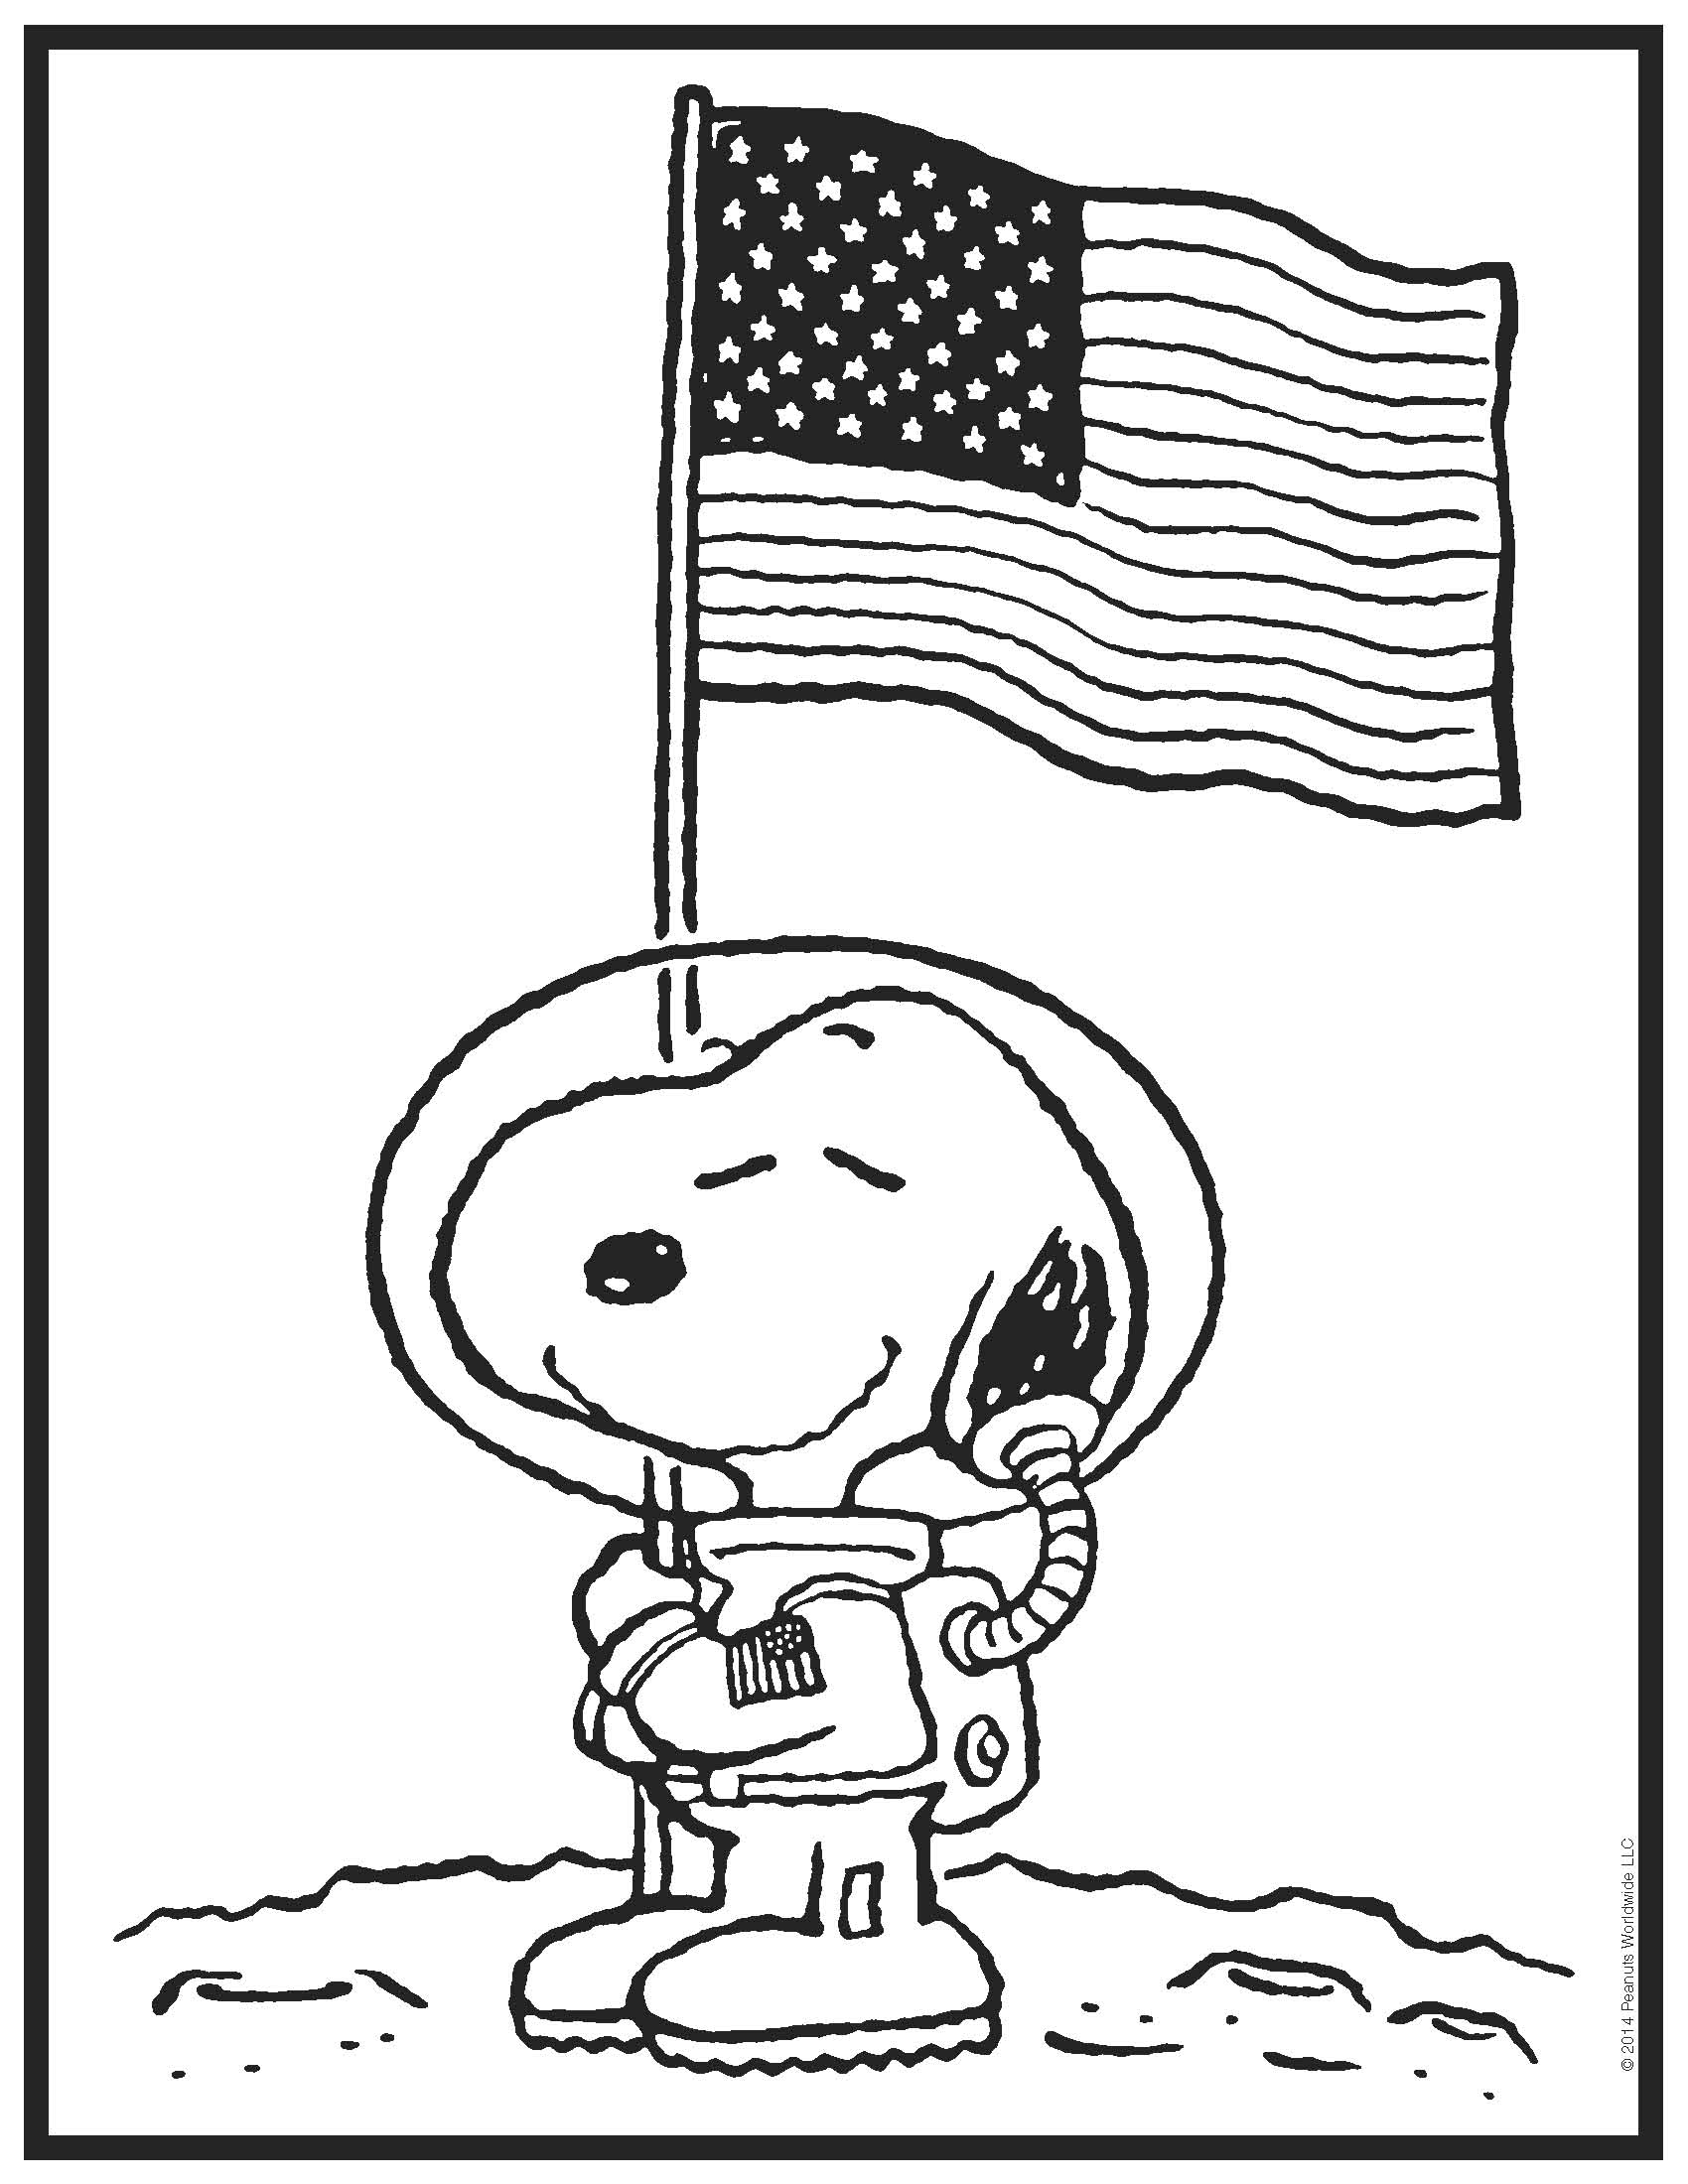 Snoopy coloring pages to download